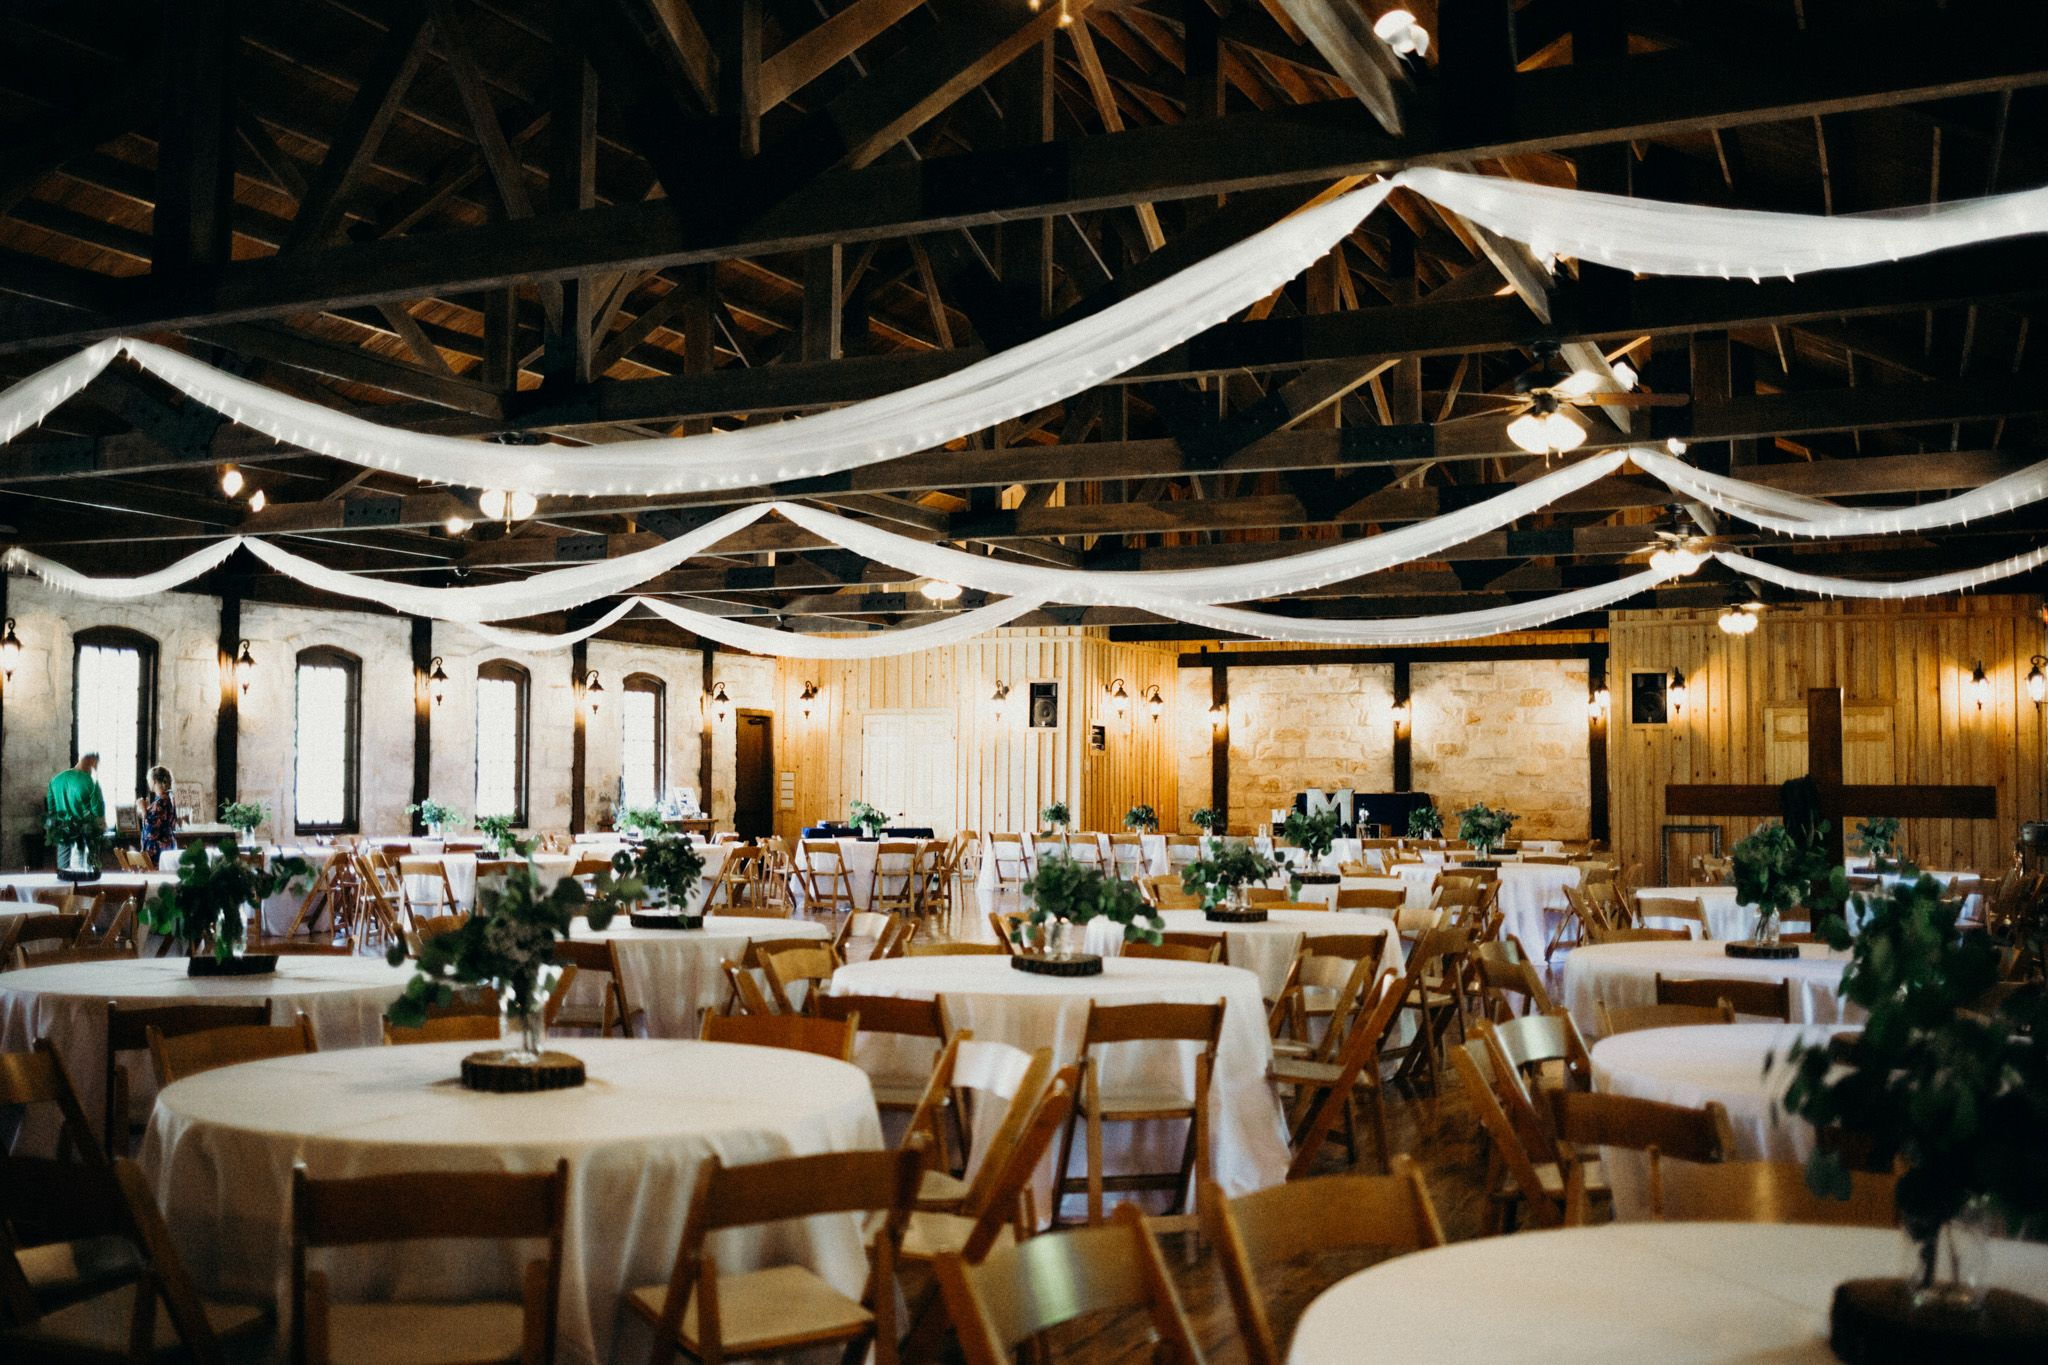 Beautiful Reception Hall That Can Hold Over 300 Guests Near The